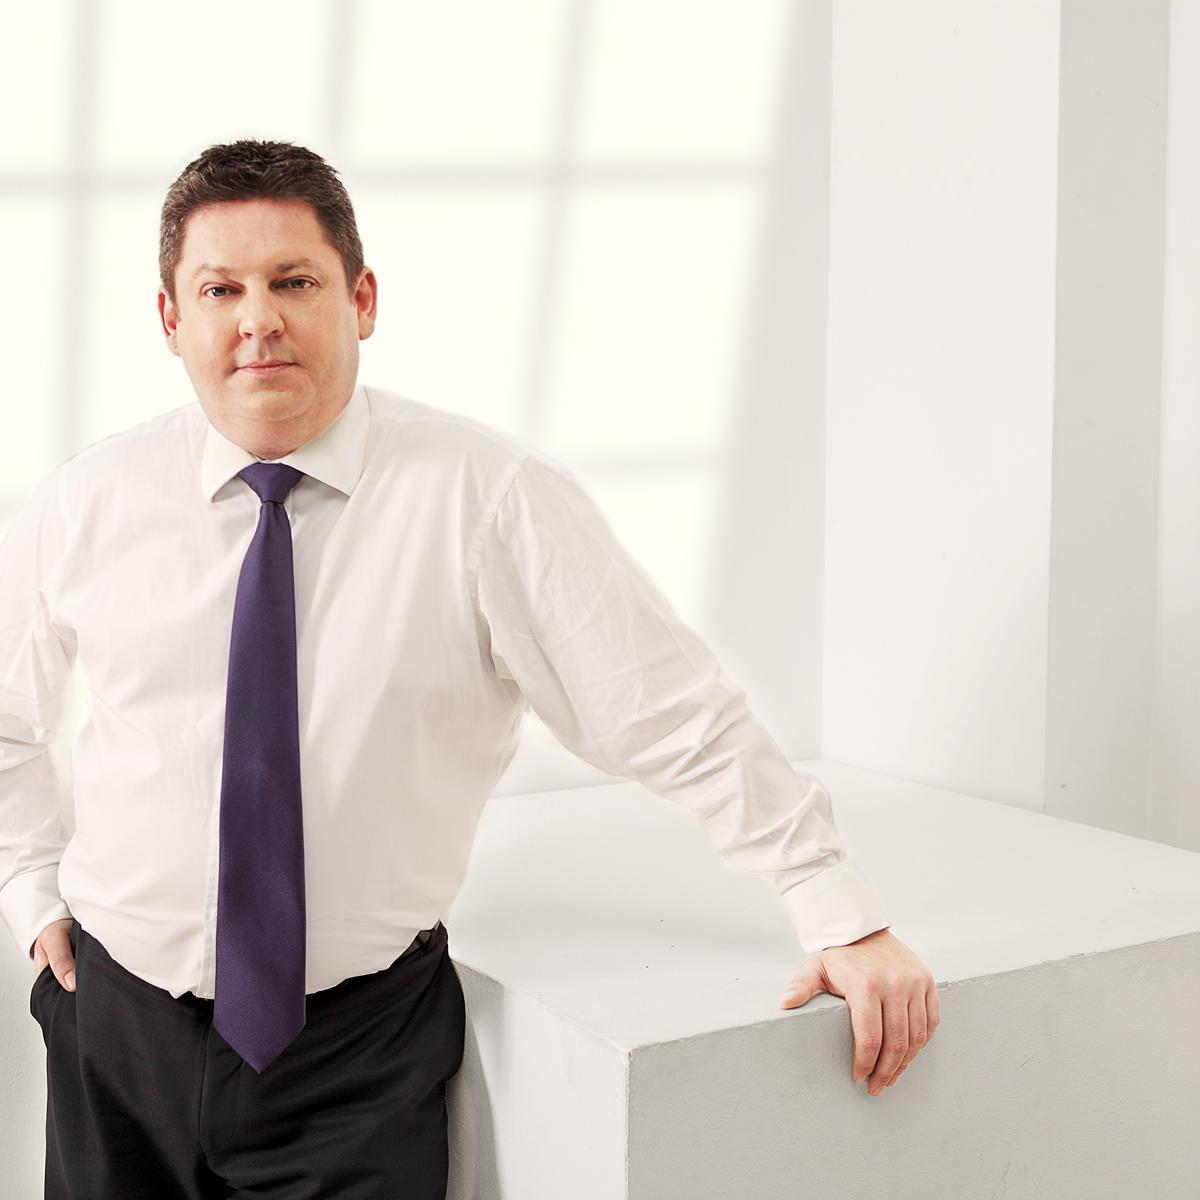 Photography for Ironsure Inc. by Julian Hanford, corporate portrait photographer London